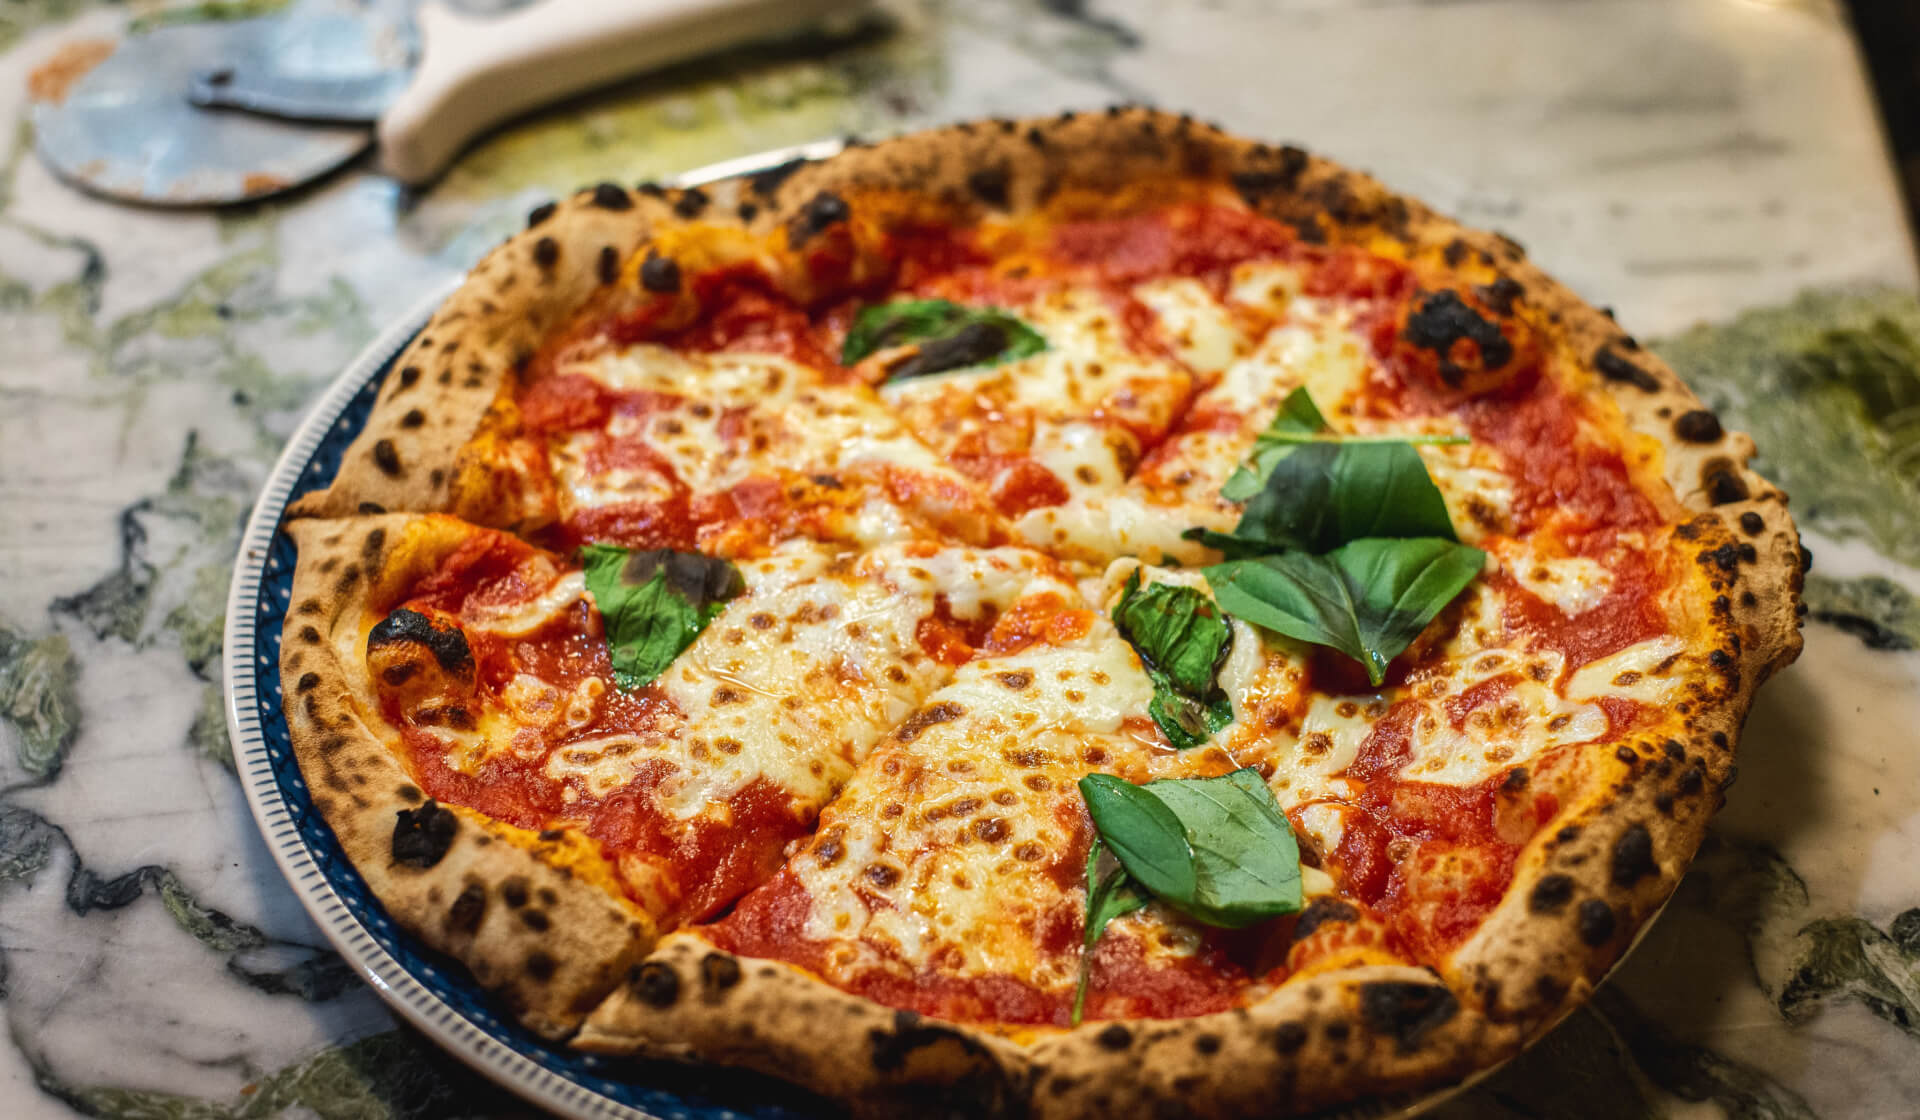 True Italian-style pizza with bubbly crust, lots of melted mozzarella, and fresh basil leaves